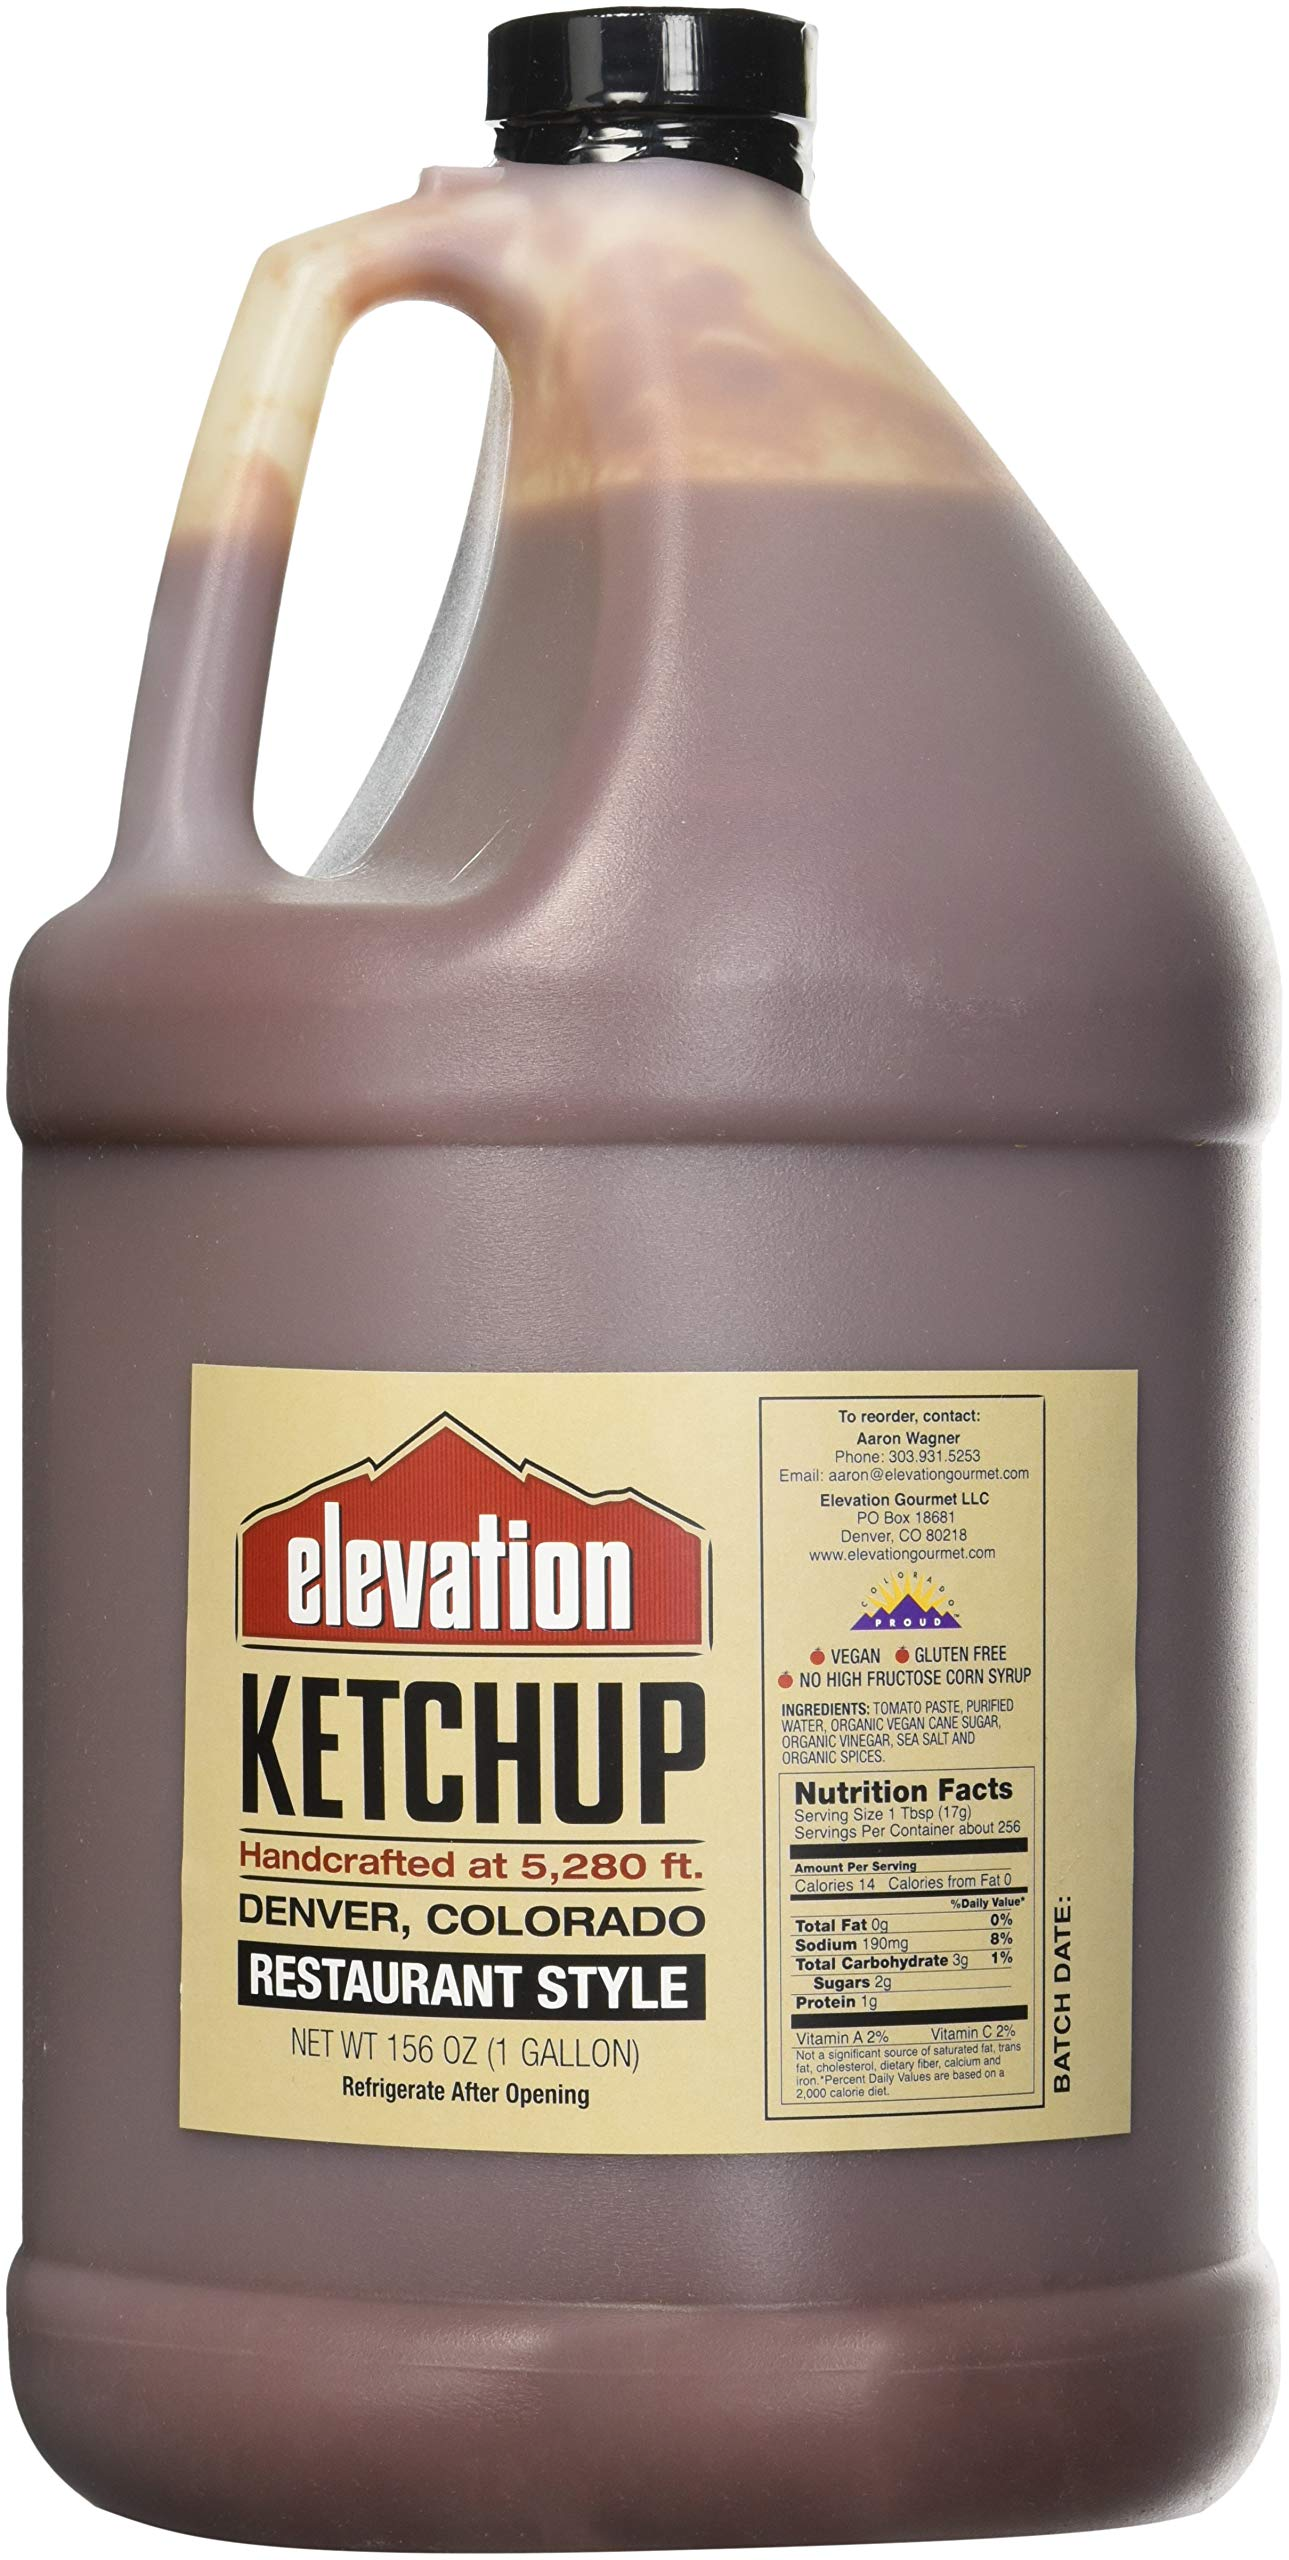 Elevation Ketchup Restaurant Style 156 Oz.(1 Gallon)